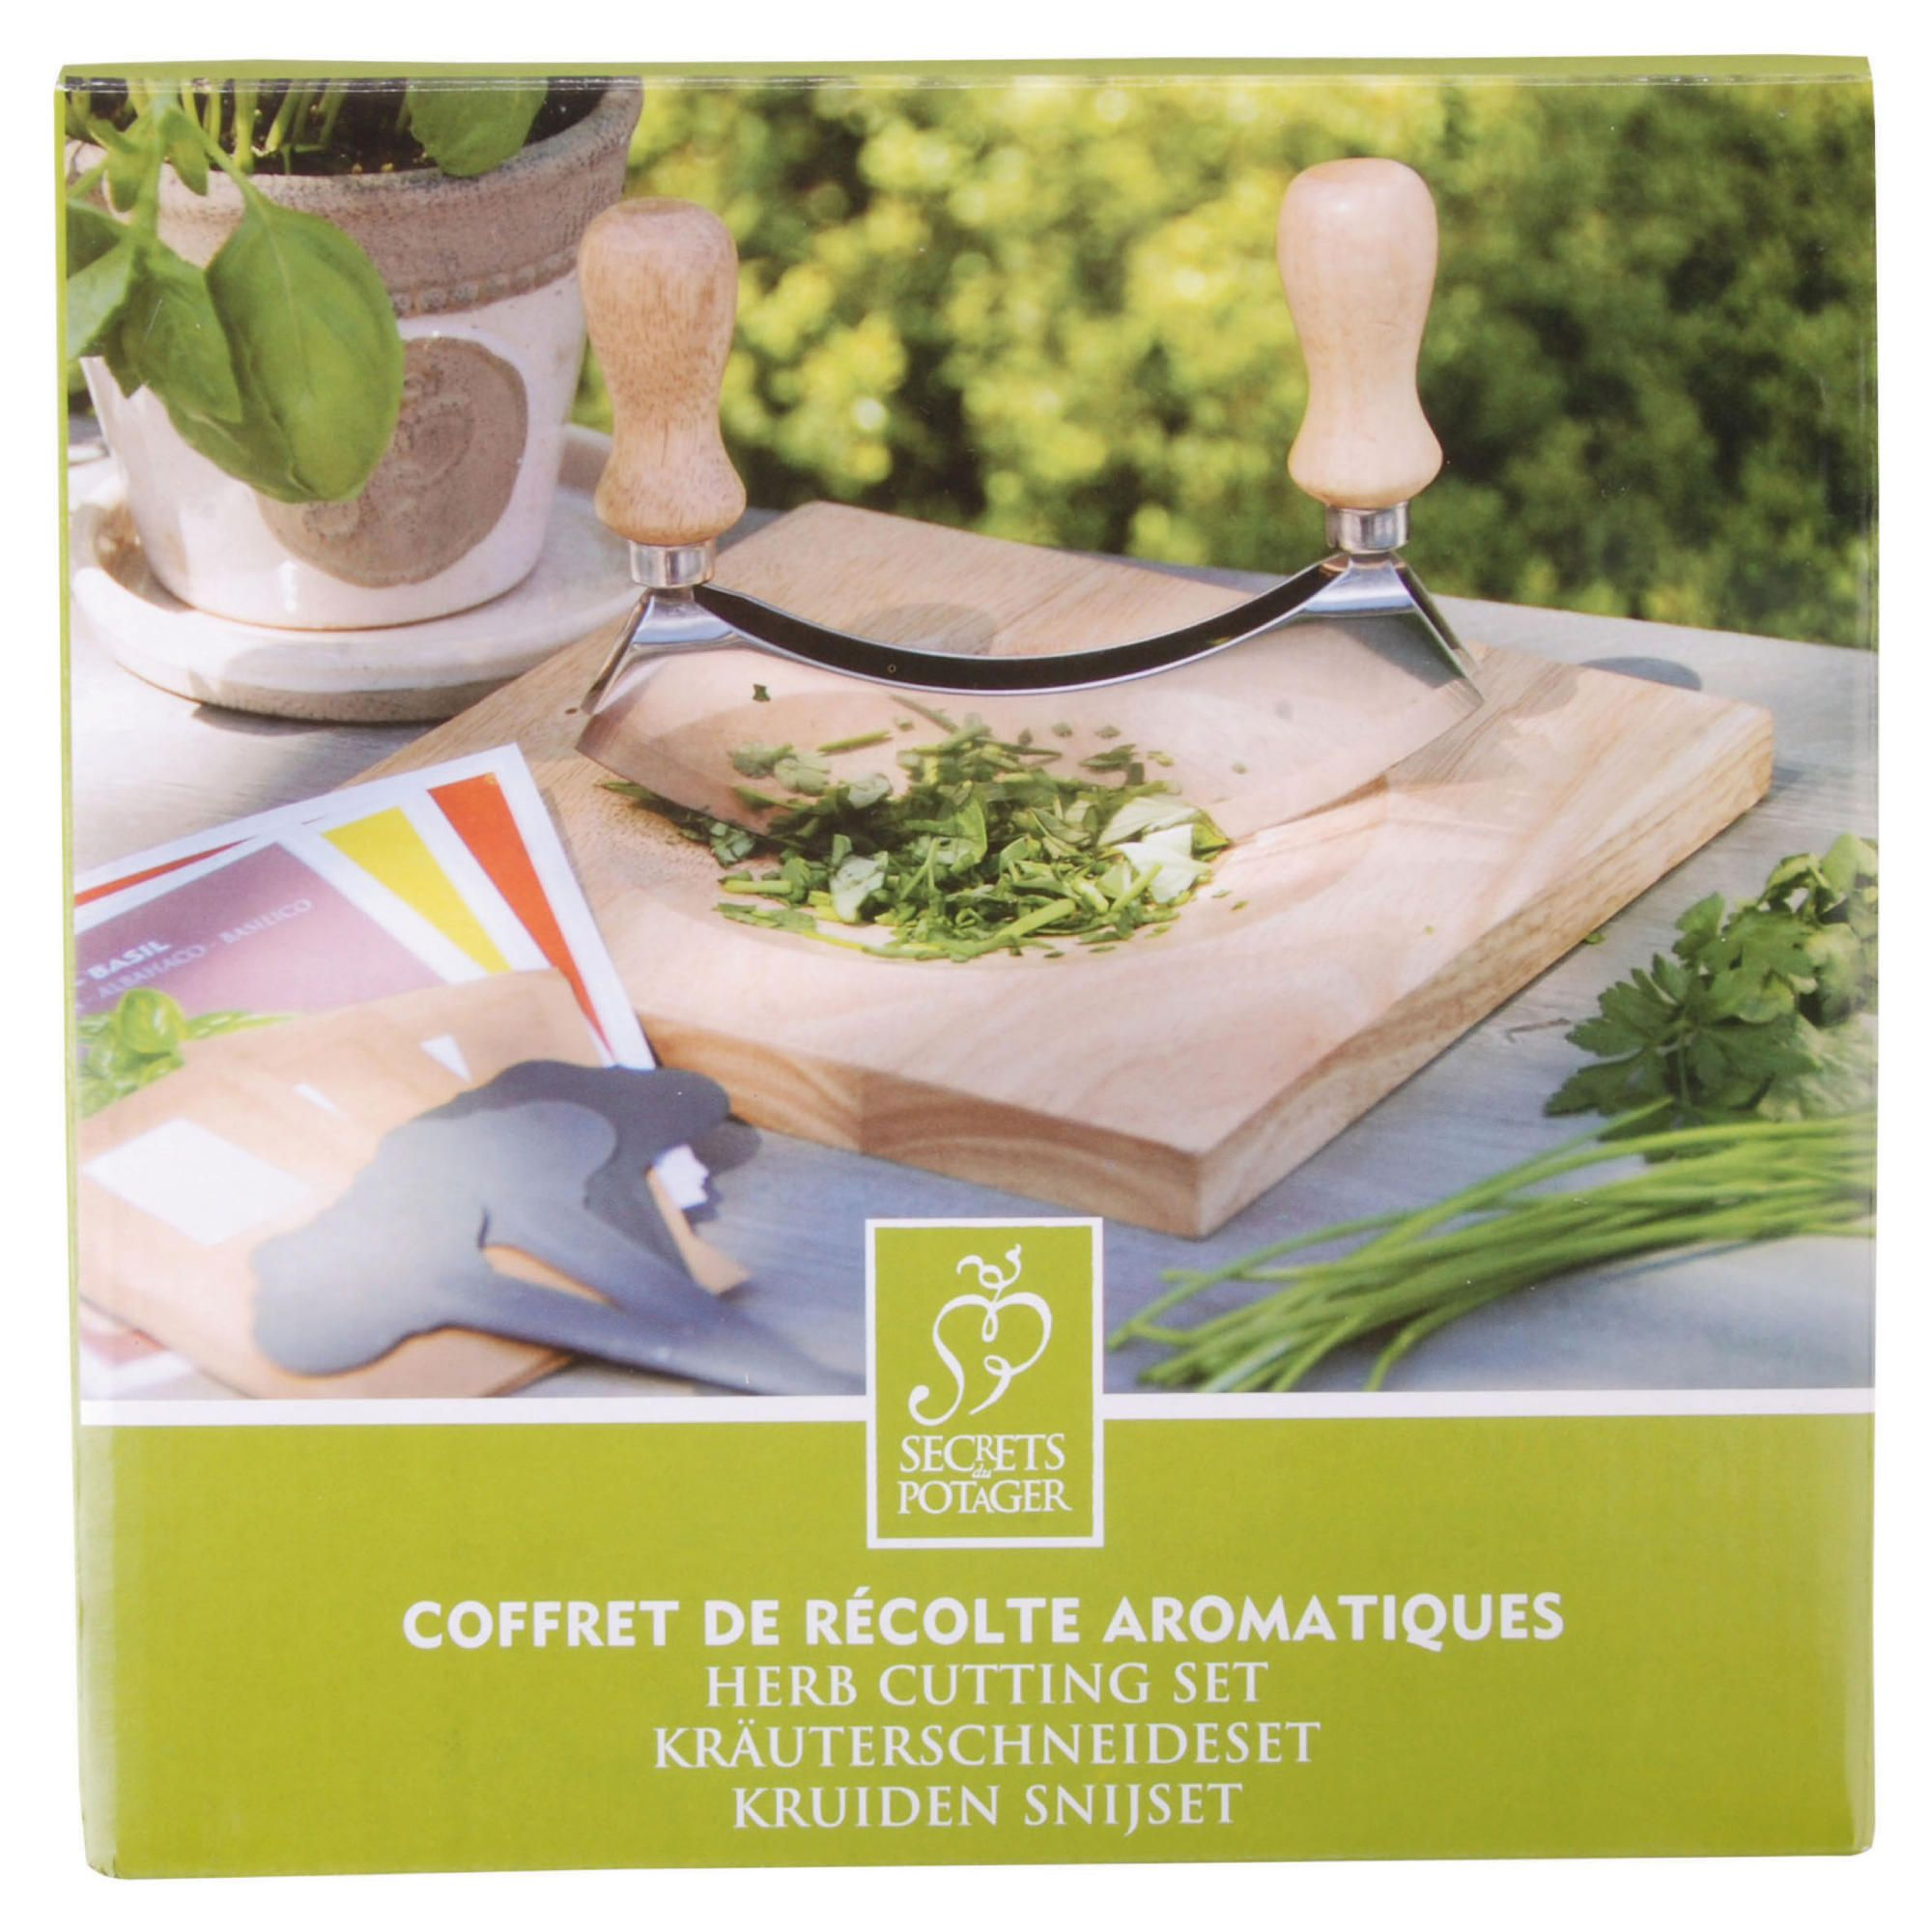 Offerta: Fallen Fruits Herb Cutting Set